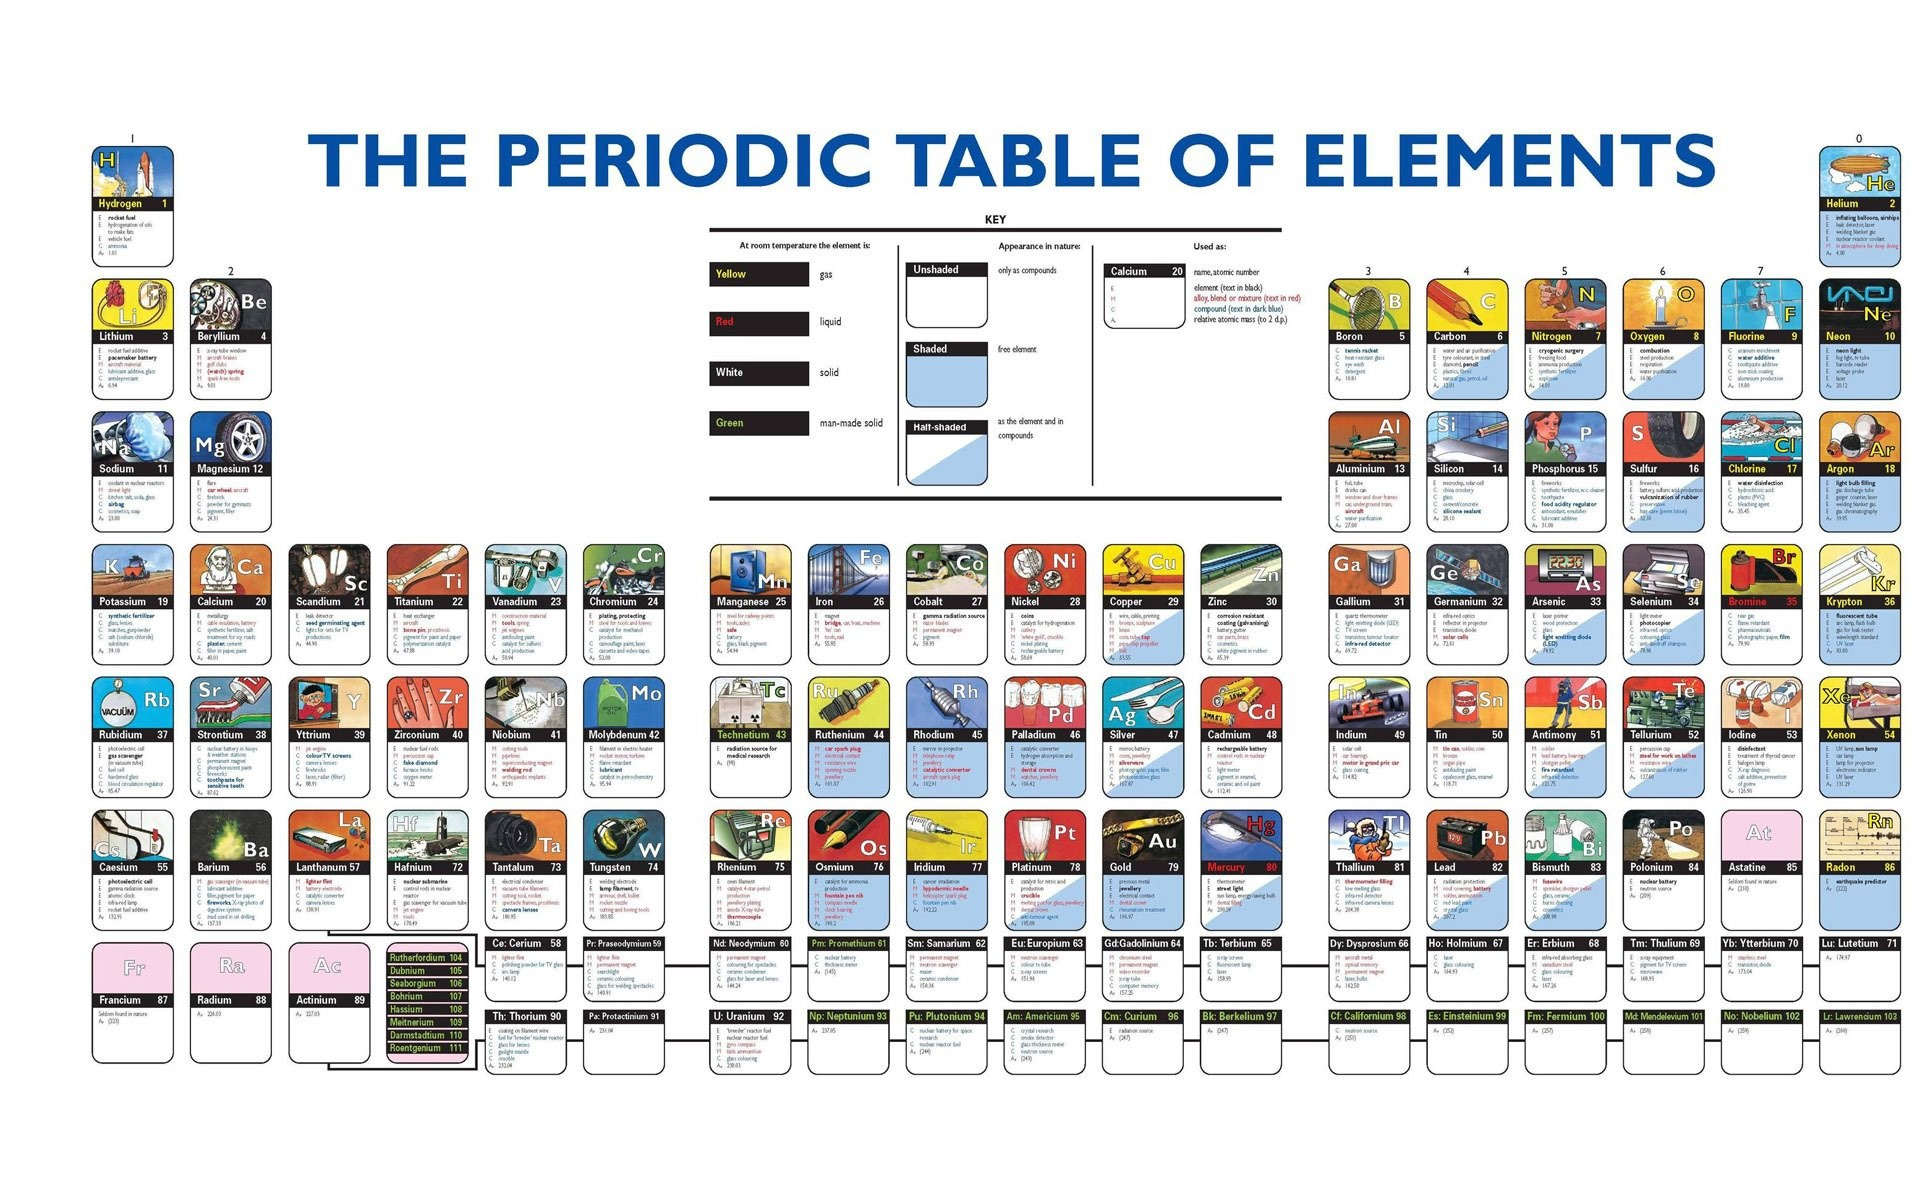 Periodic table wallpaper download free beautiful full hd 1920x1200 the periodic table of elements wallpaper gamestrikefo Gallery